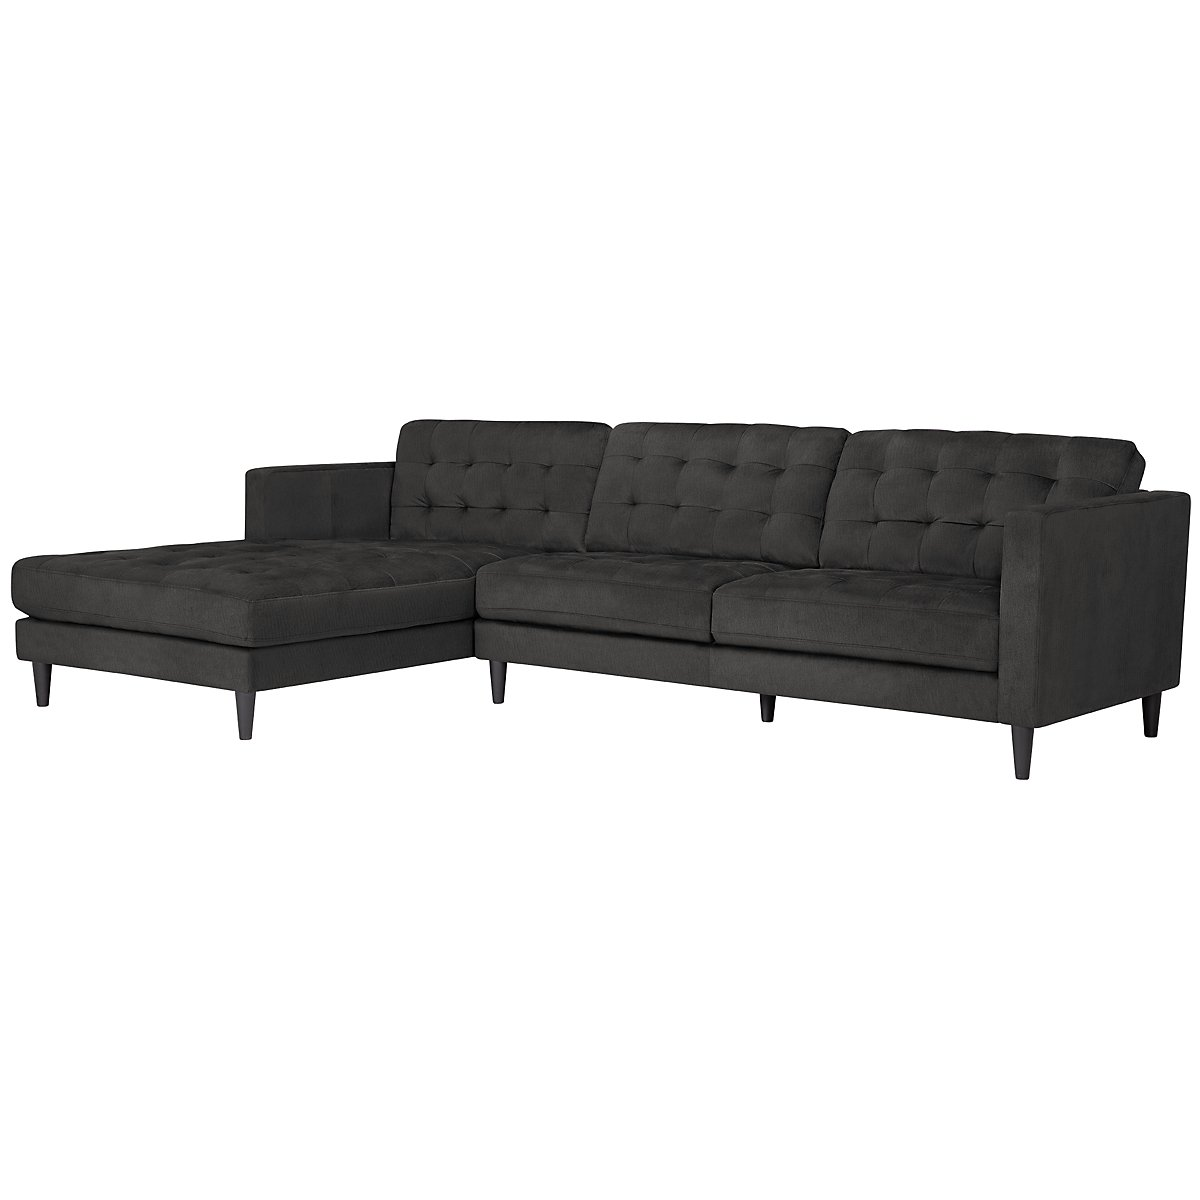 City furniture shae dark gray microfiber left chaise for Gray microfiber sectional sofa with chaise